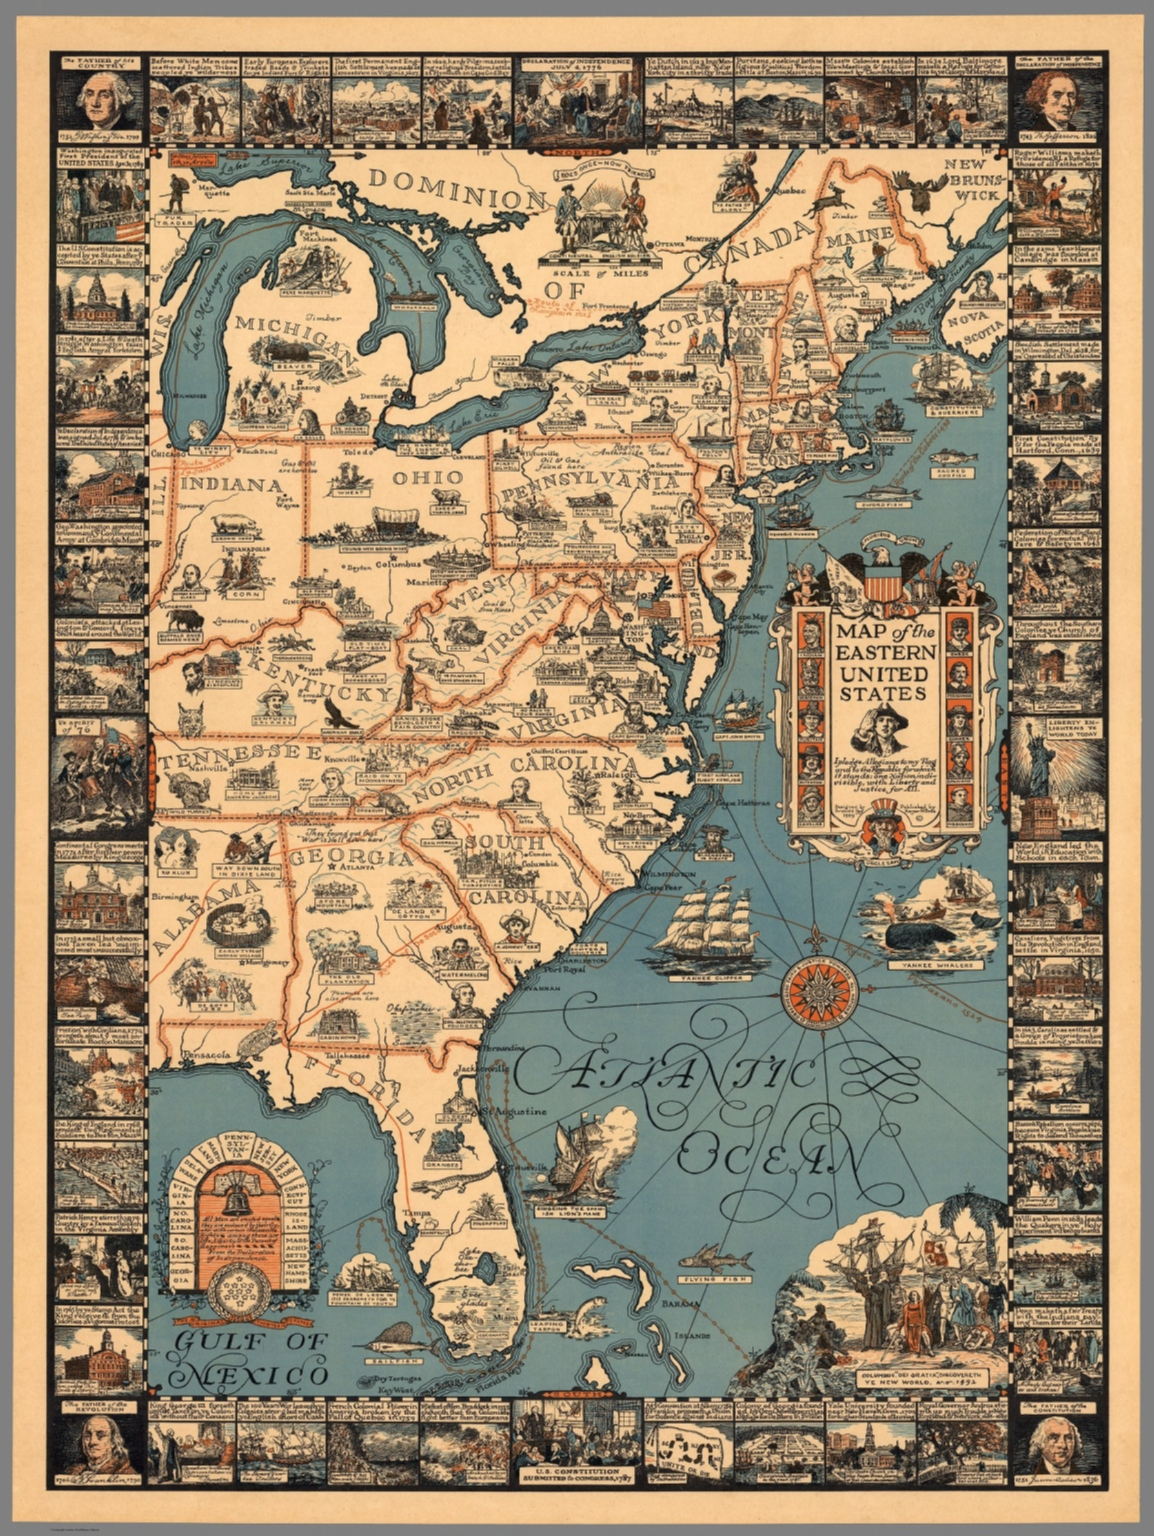 Map of the Eastern United States.